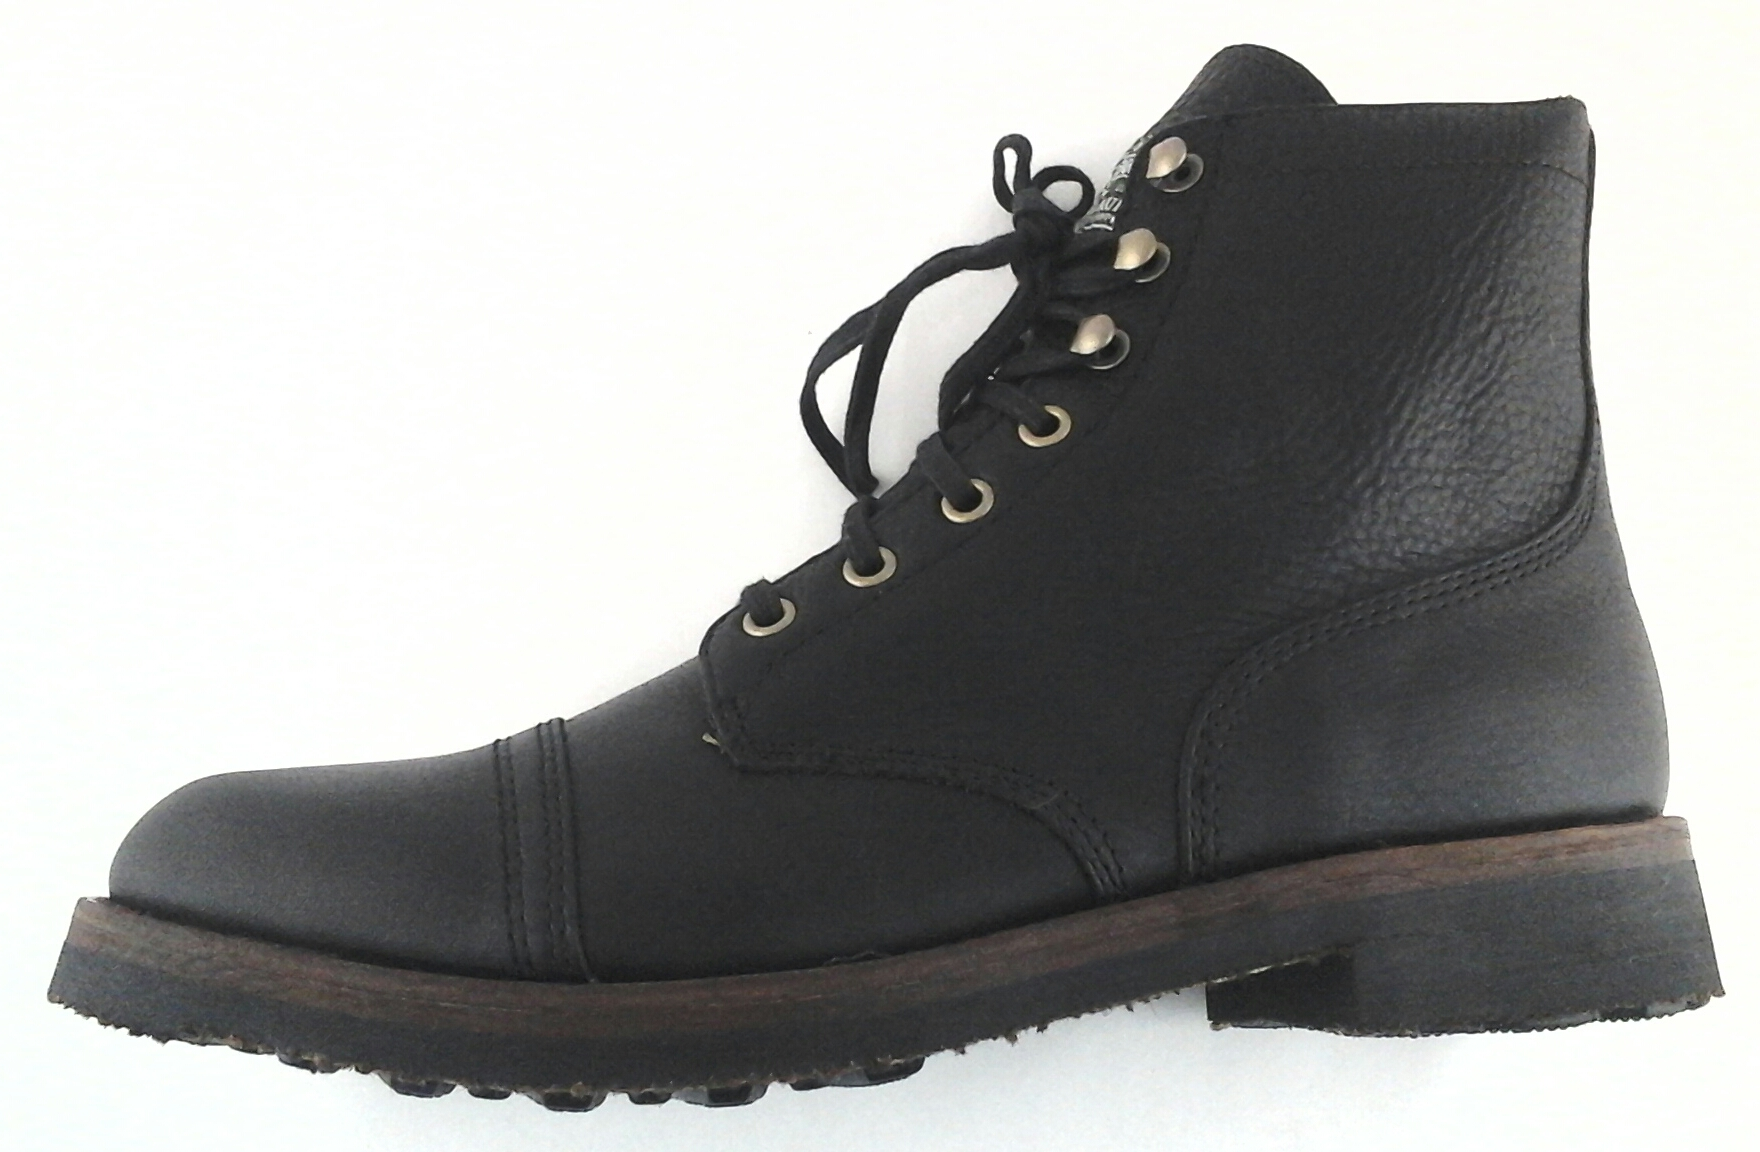 cc2206ca2342b Details about Polo Ralph Lauren Enville Cap-Toe Boot Dark Brown Leather US  10.5 US 12 New